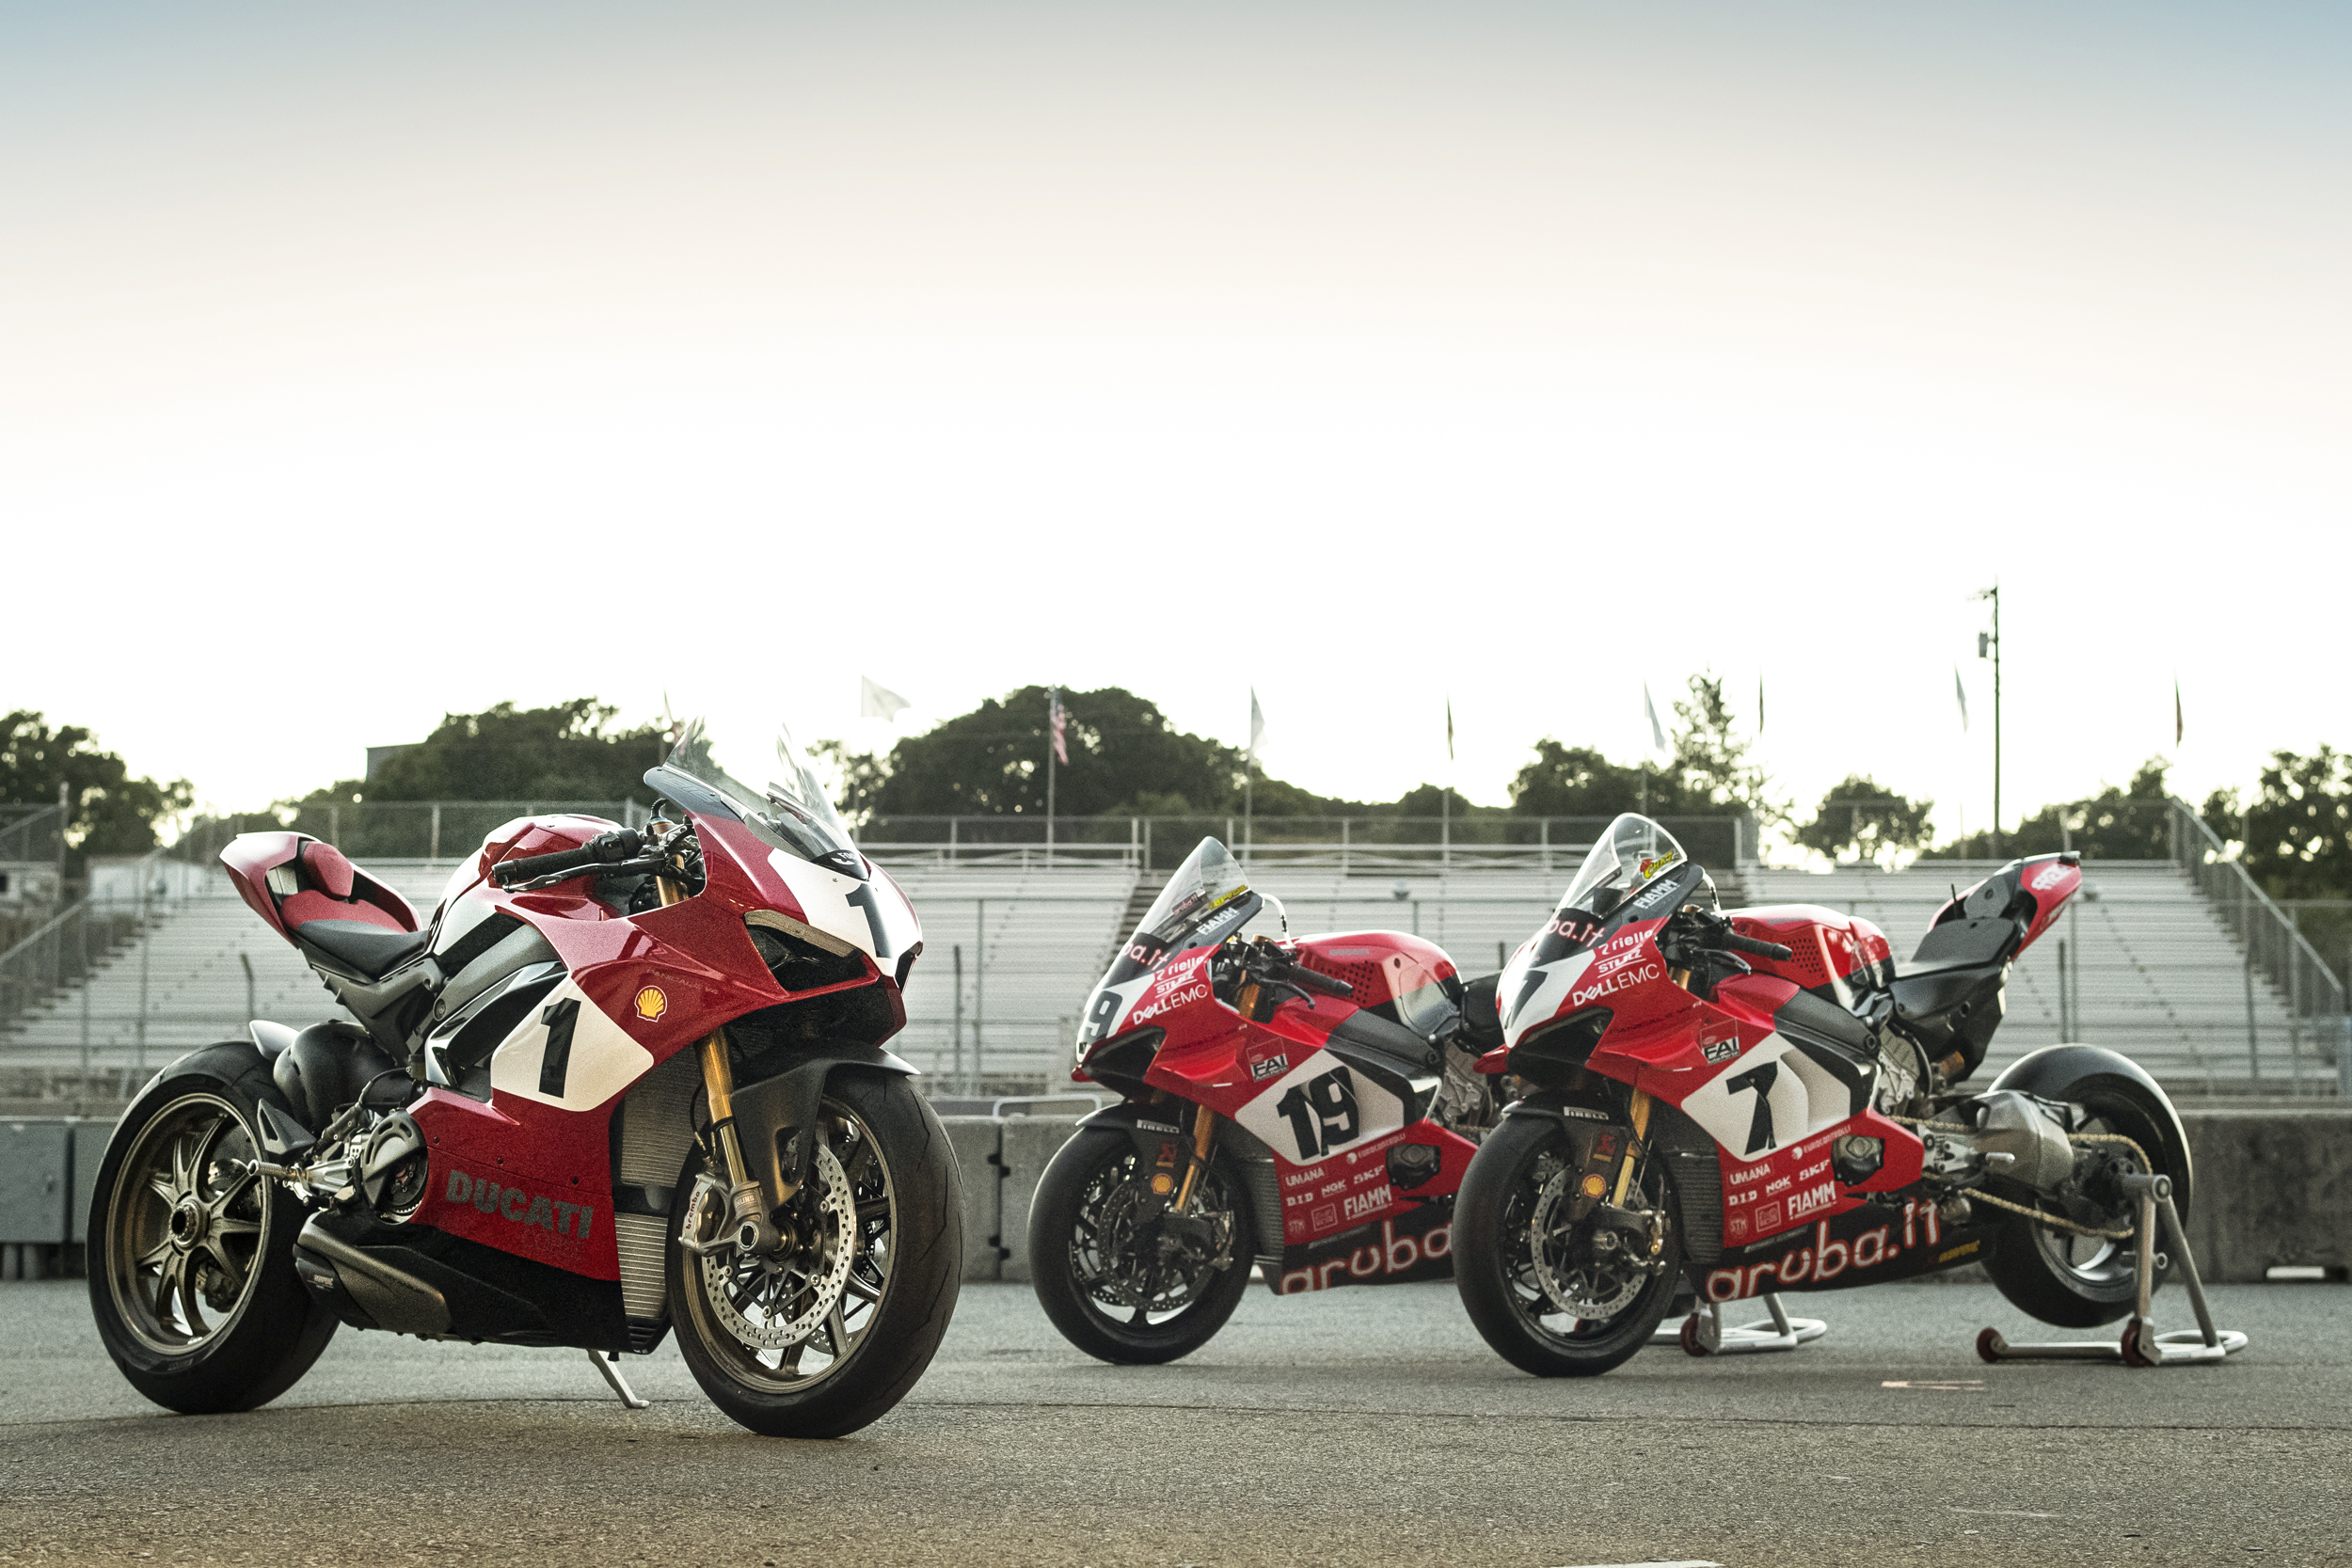 190905 Panigale V4 25° Anniversario 916 to be Auctioned for Carlin Dunne Foundation [2]